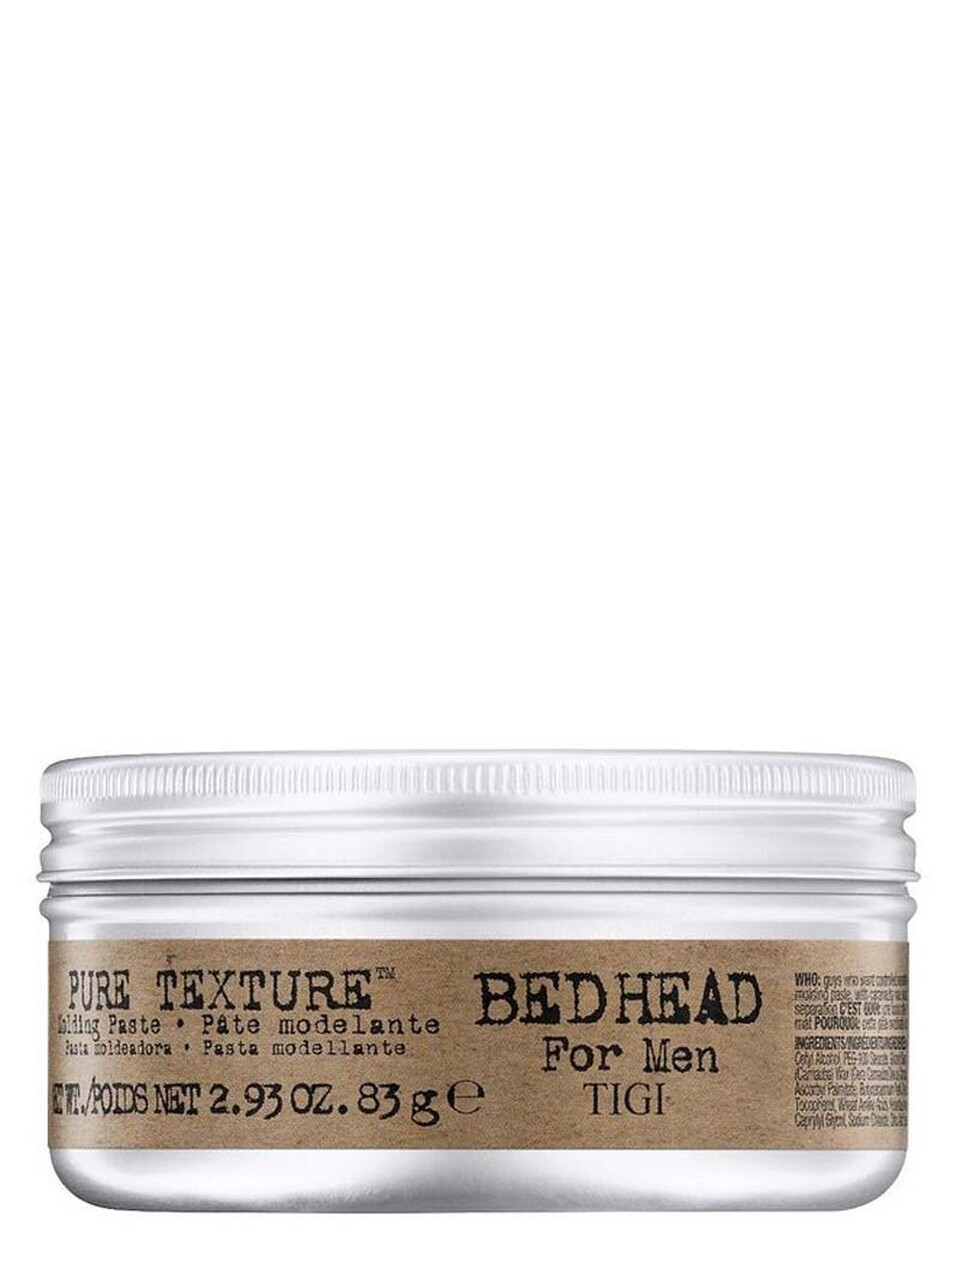 Bed Head for Men Pure Texture 83 g | Pasta Moldeadora Mate